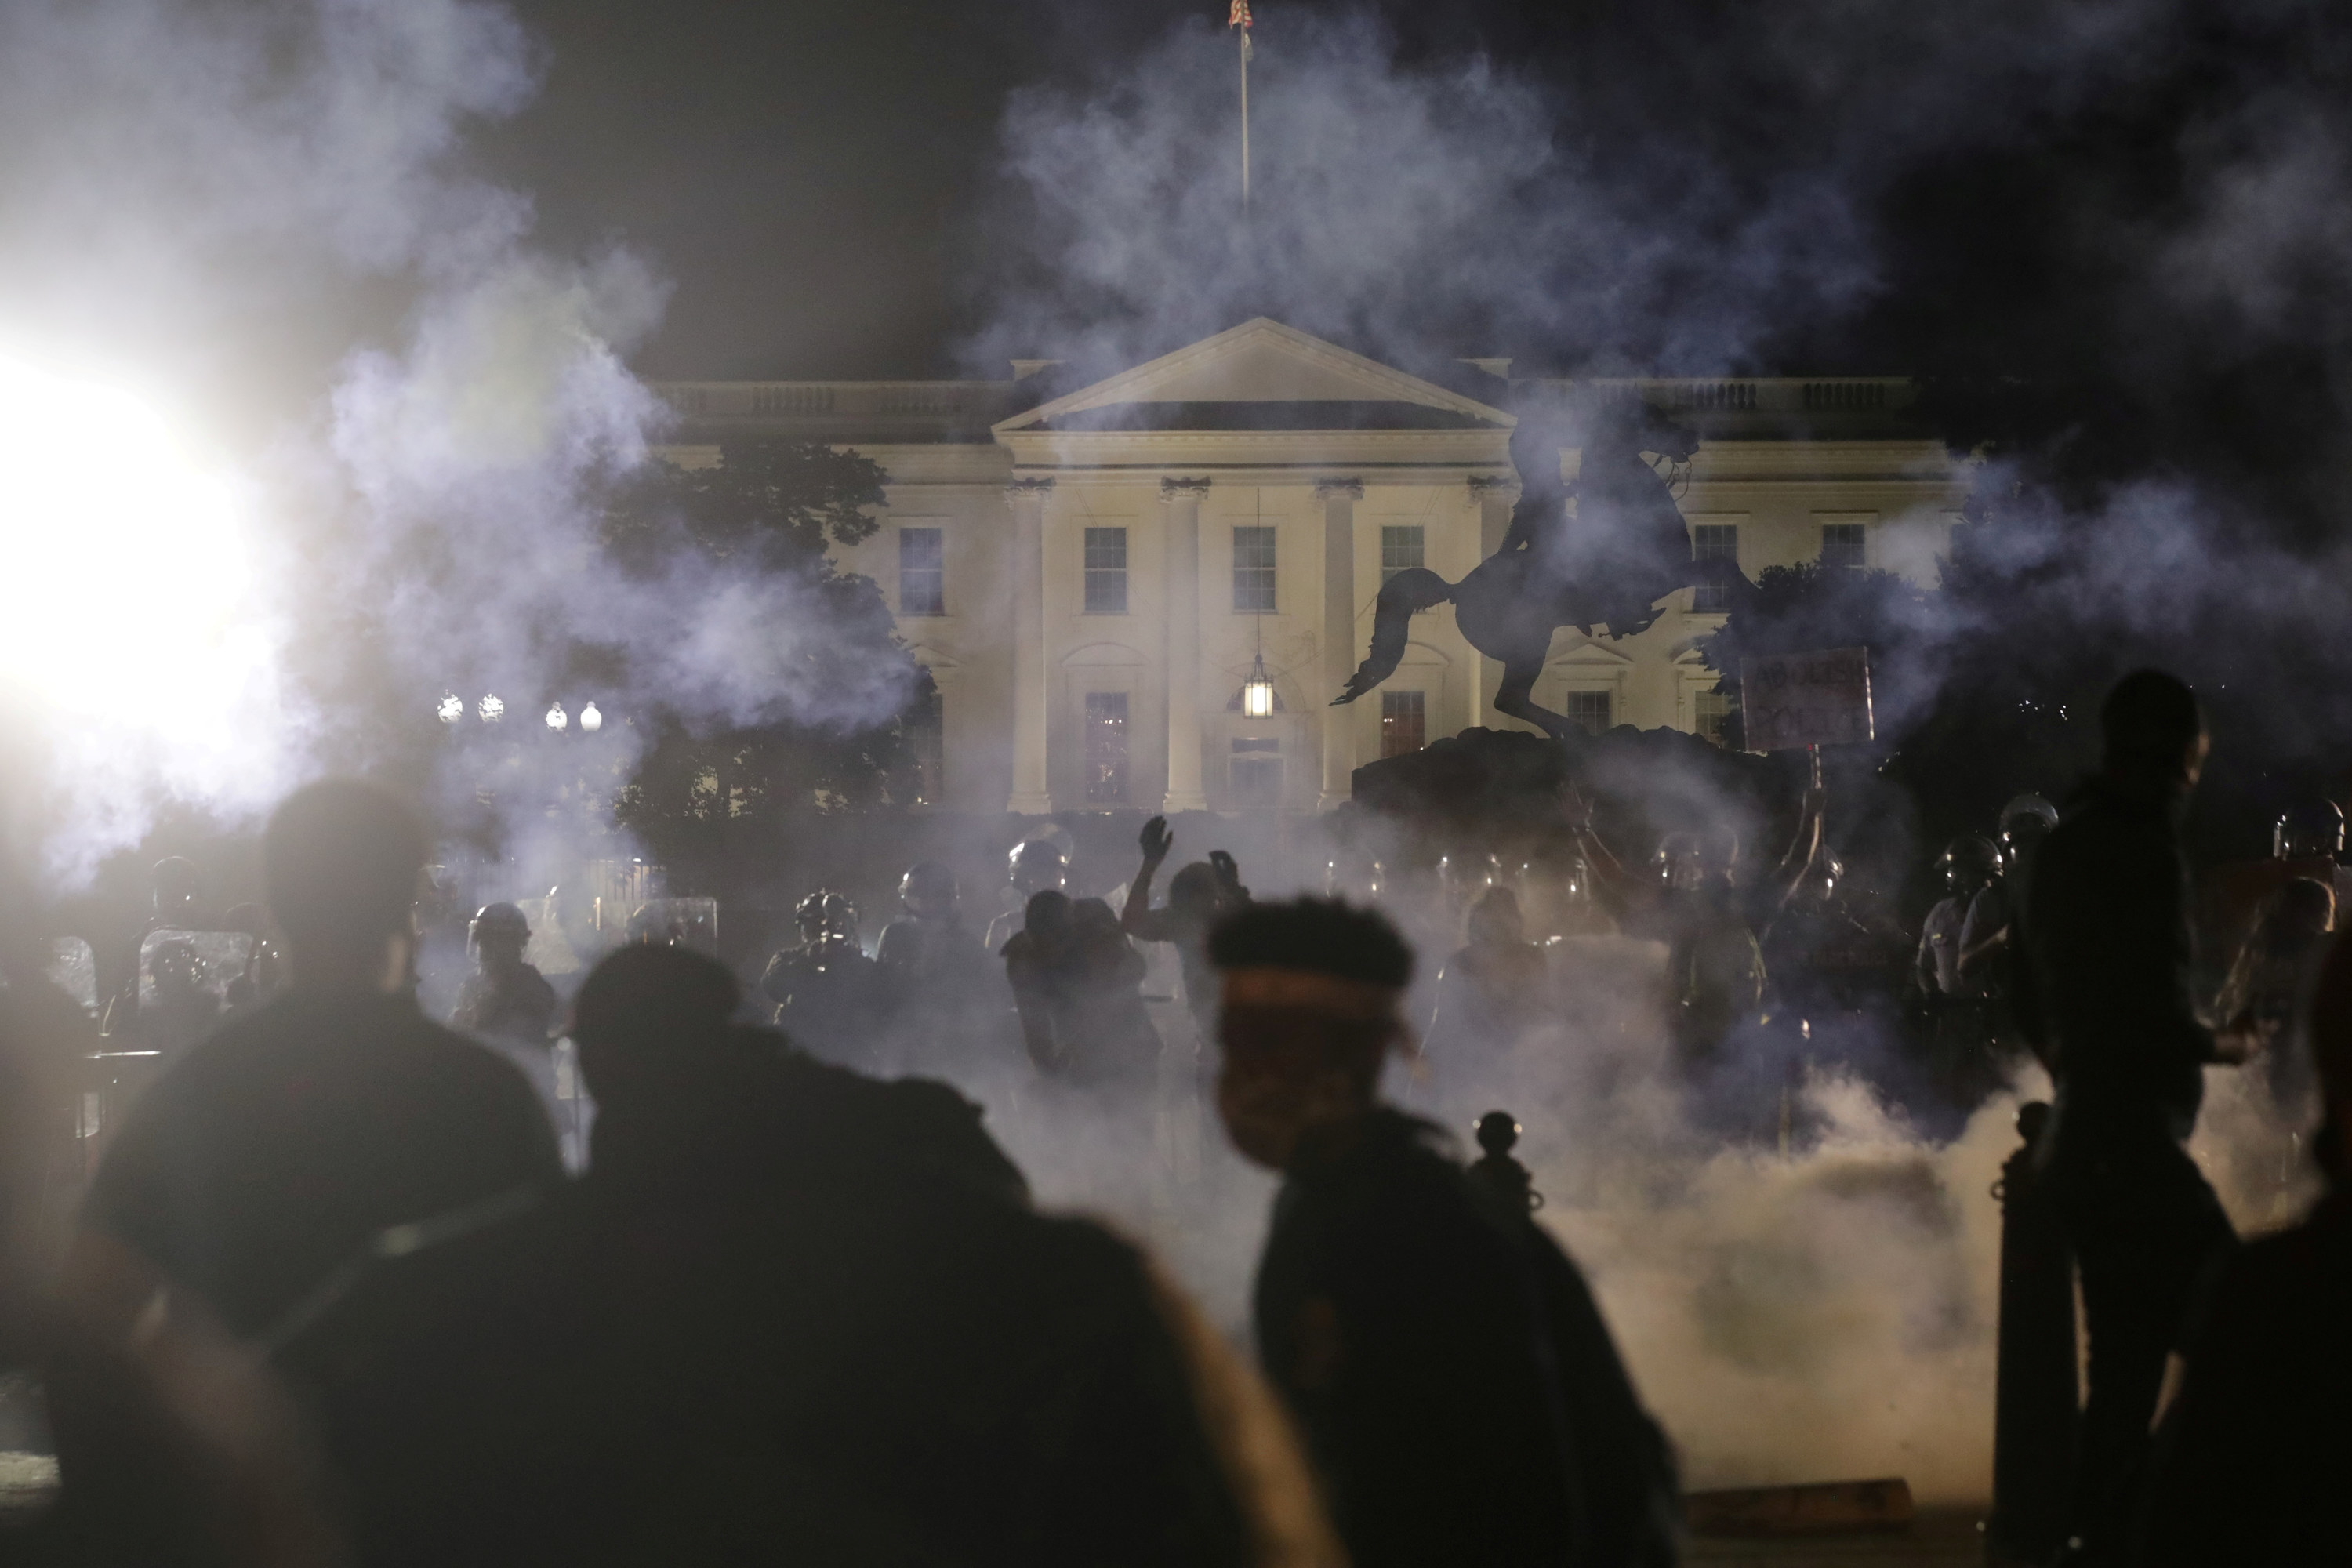 The White House turning off its lights and going dark as police officers throw tear gas at peaceful protesters on May 31, 2020